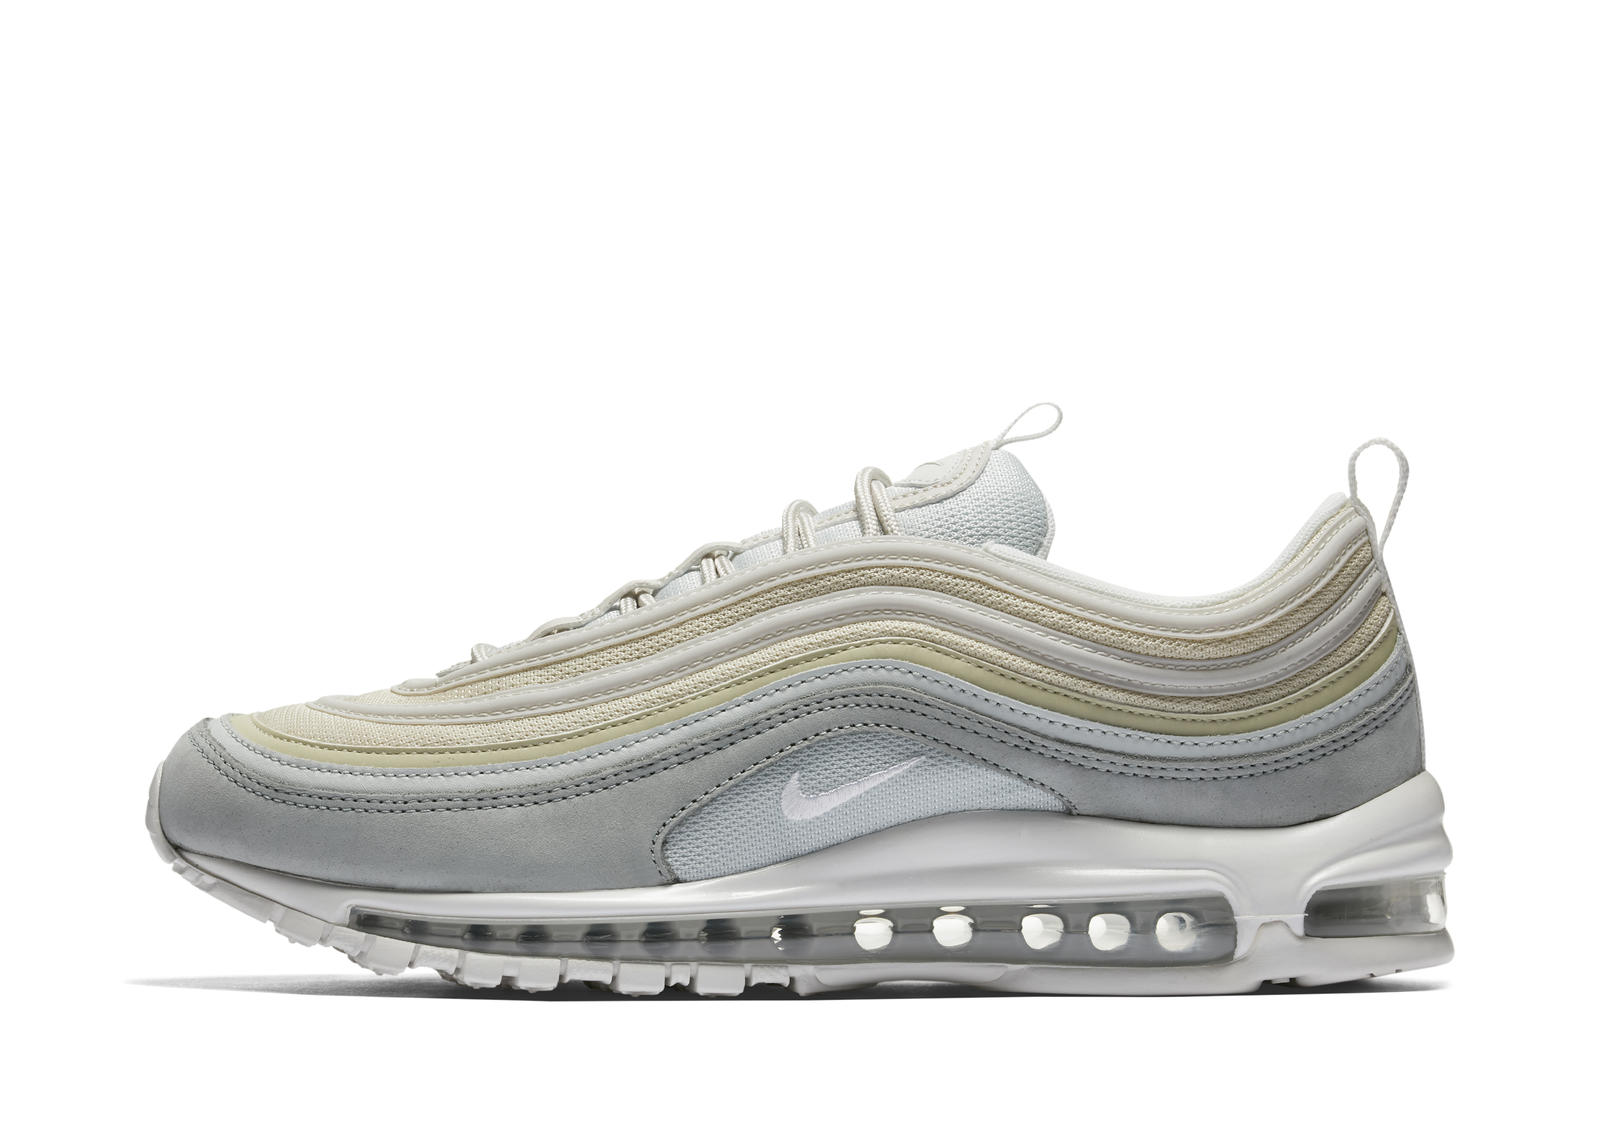 Nike Air Max 97 Release Guide for Fall